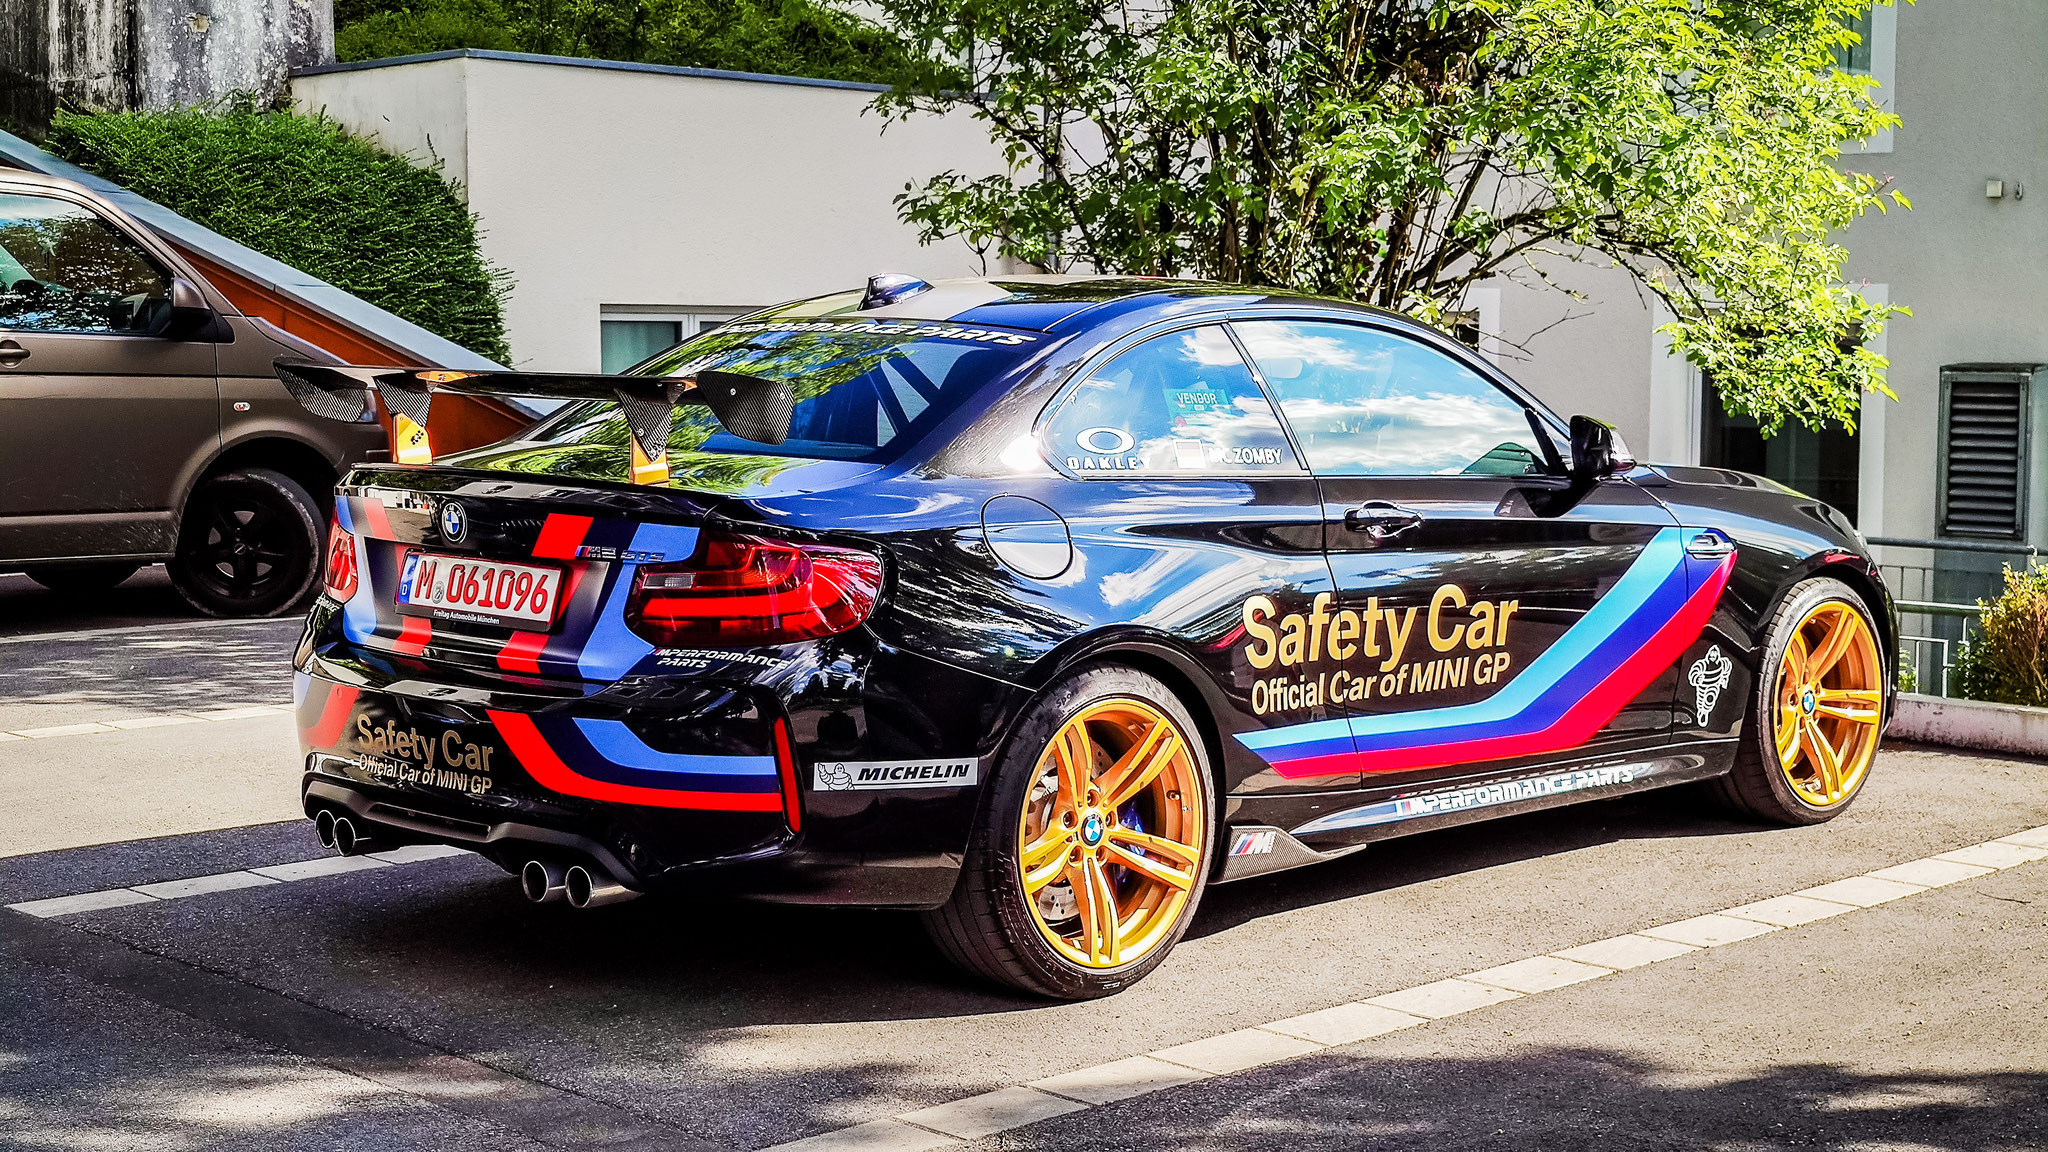 BMW M2 Safety Car - M-061096